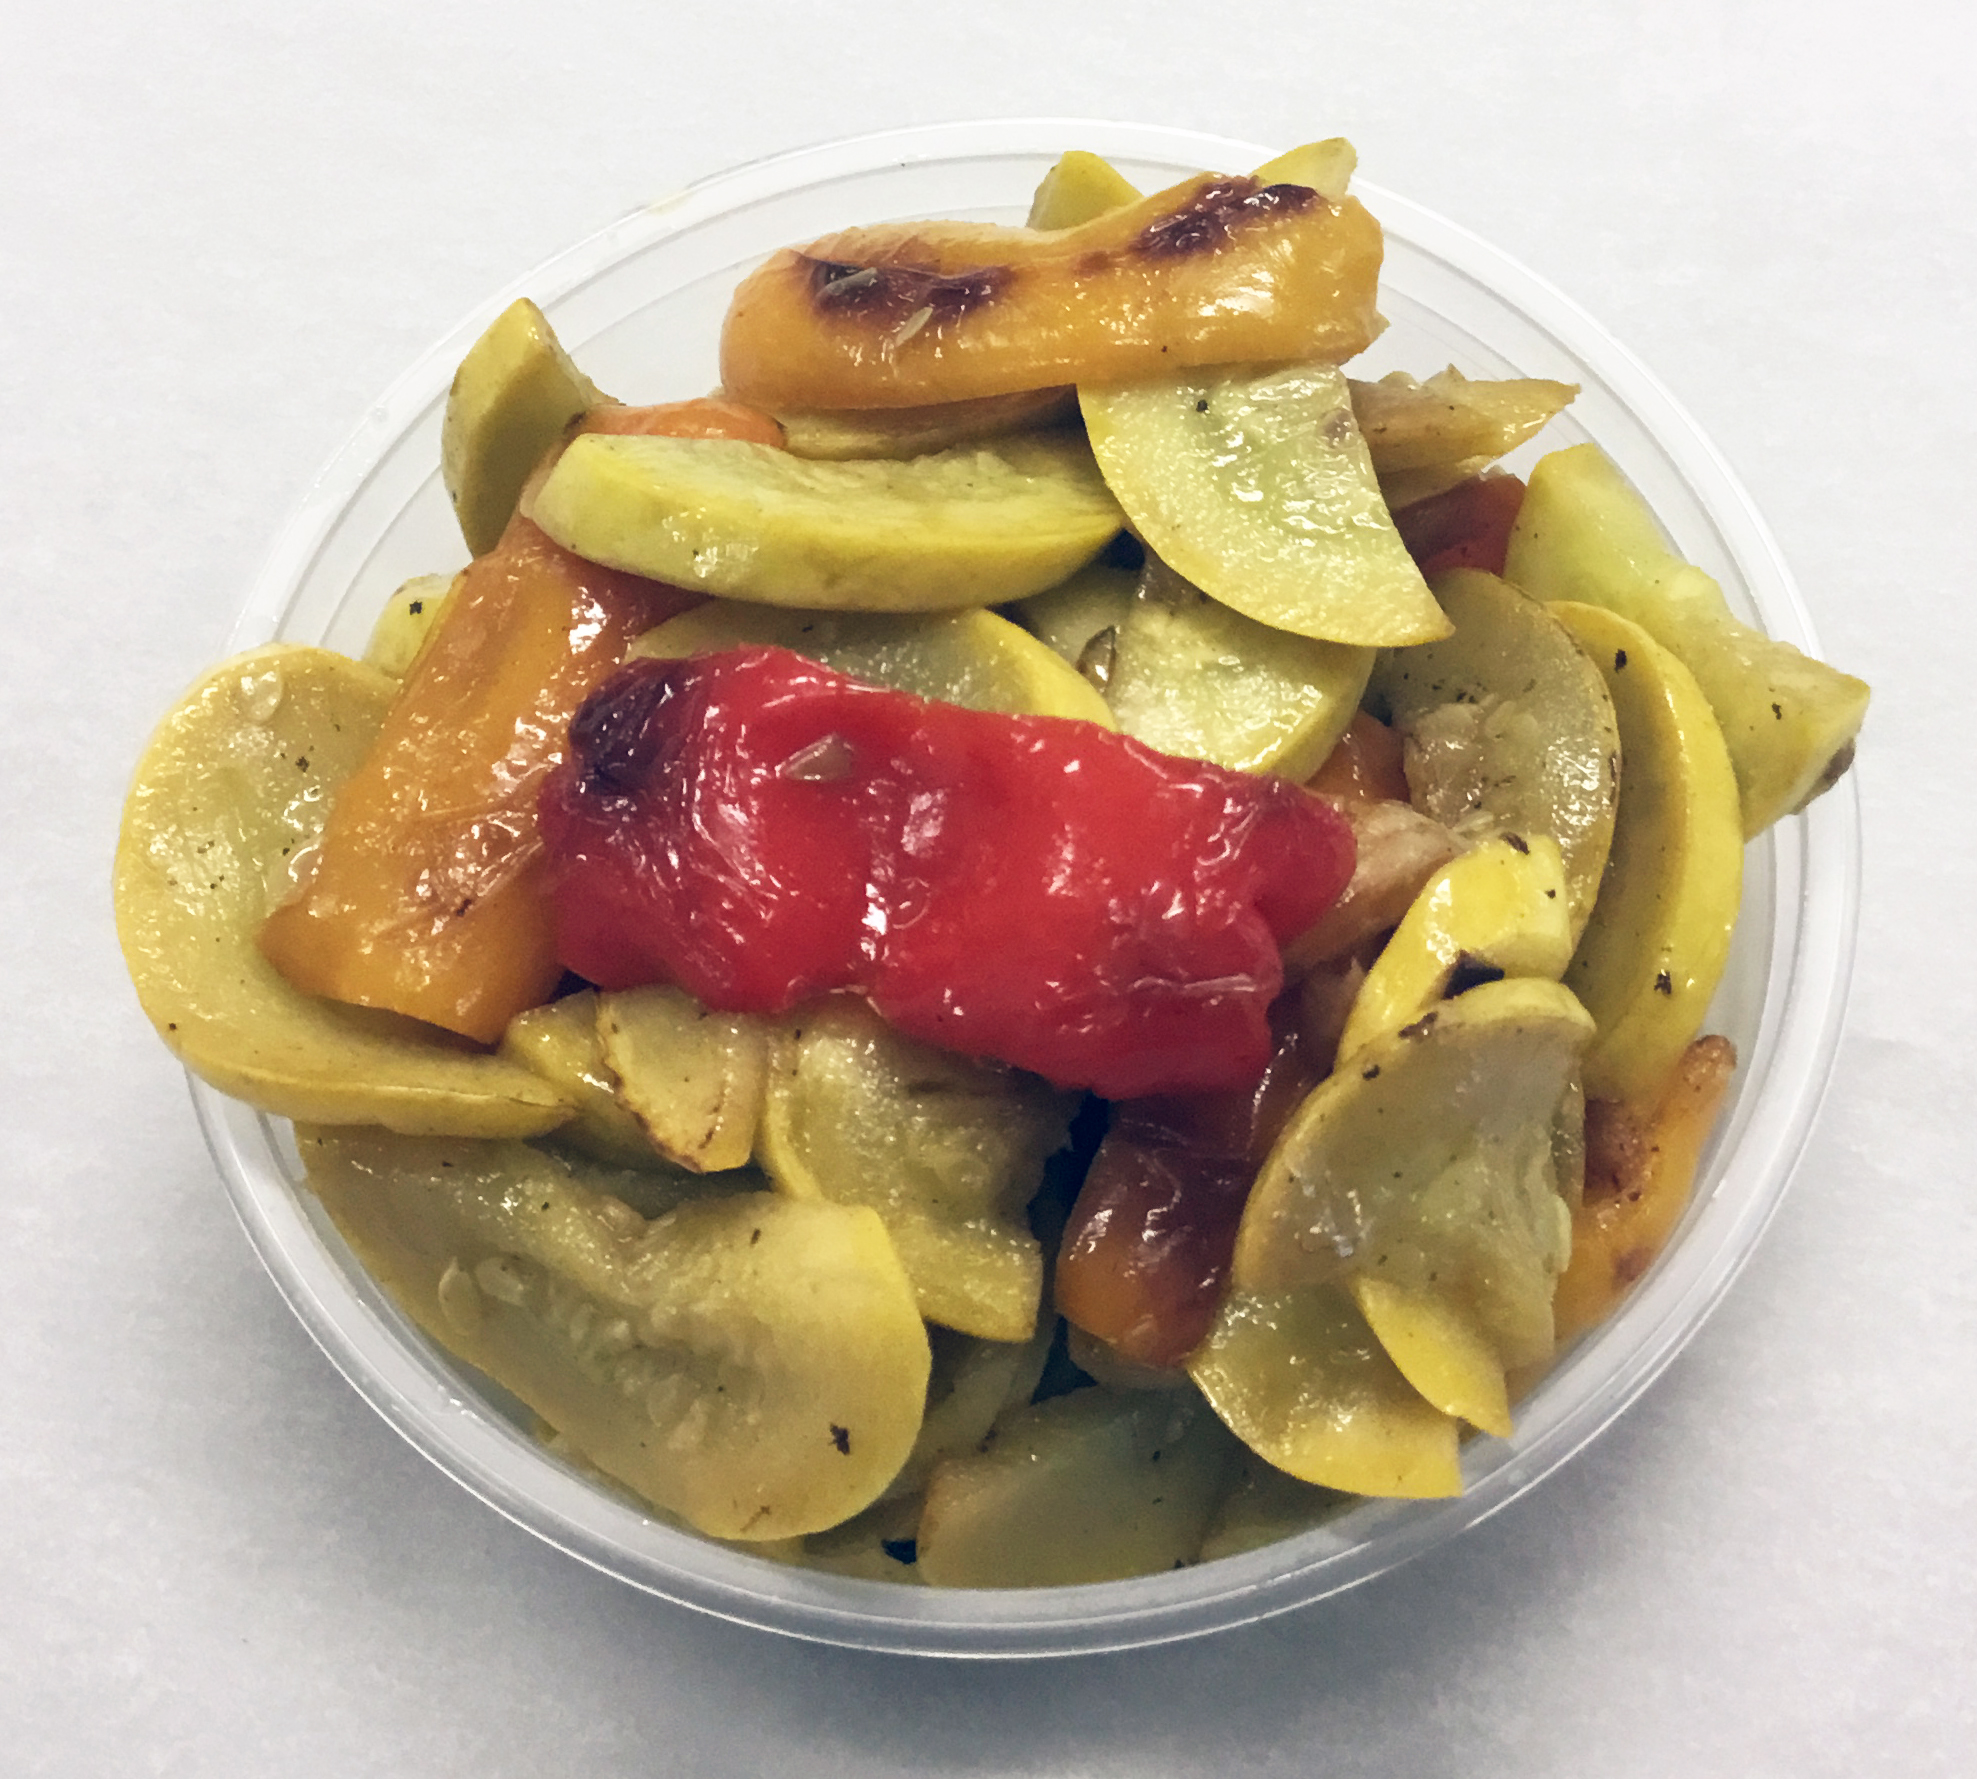 Sauteed yellow squash and bell peppers.